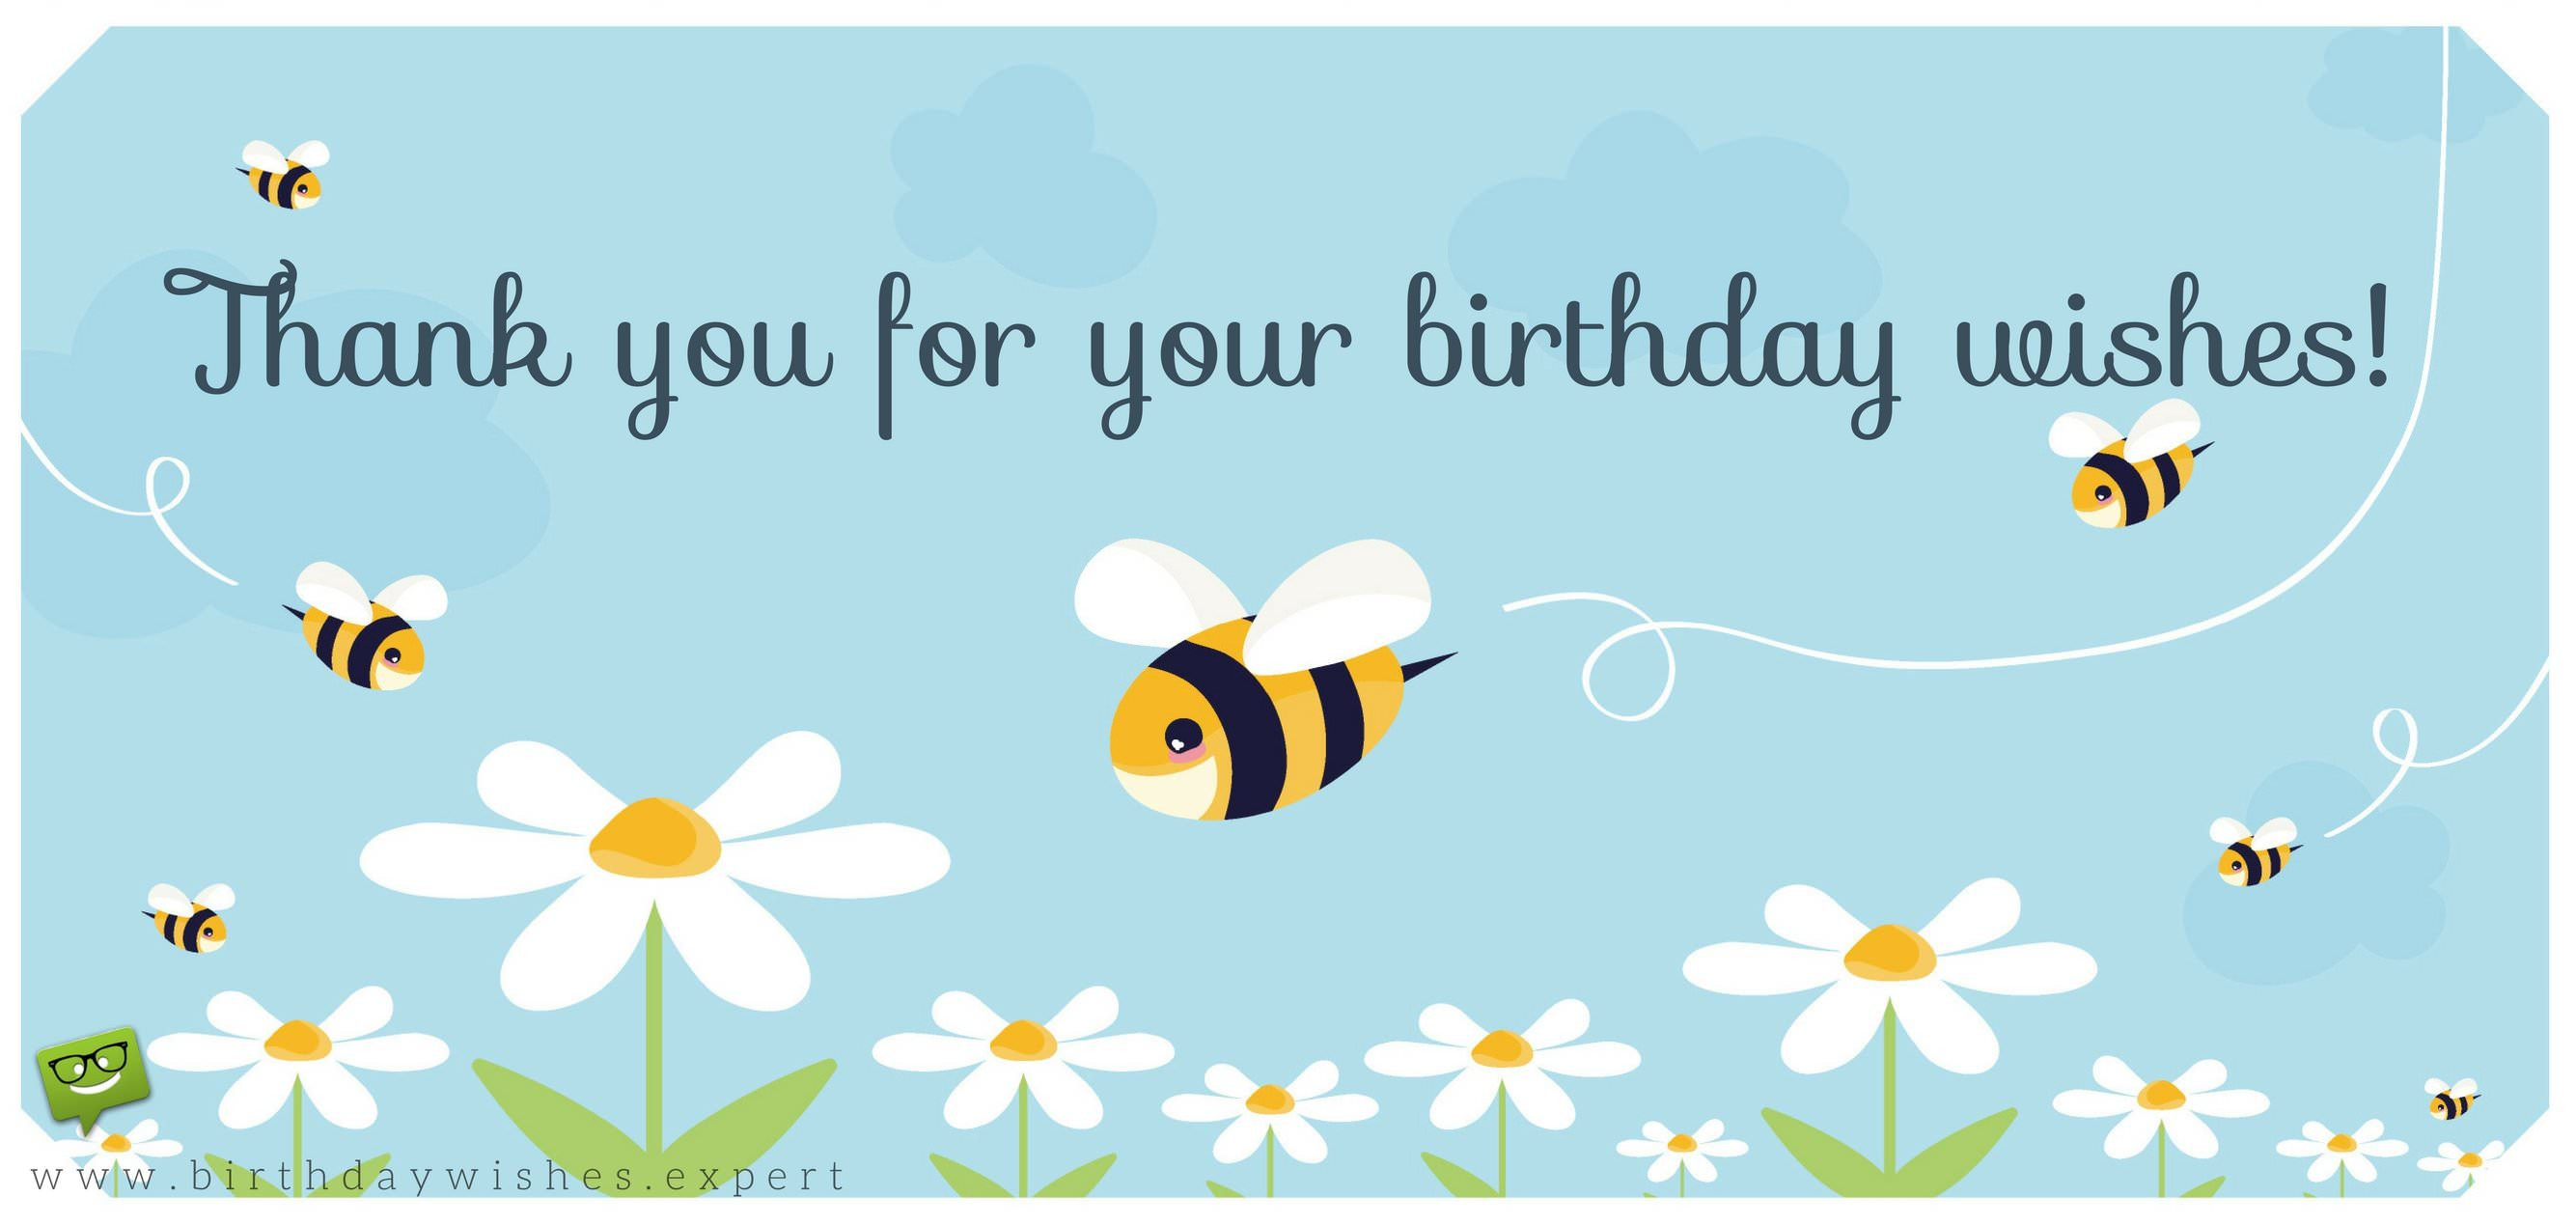 Best ideas about Thank You Notes For Birthday Wishes . Save or Pin Thank you for your Birthday Wishes & For Being There Now.